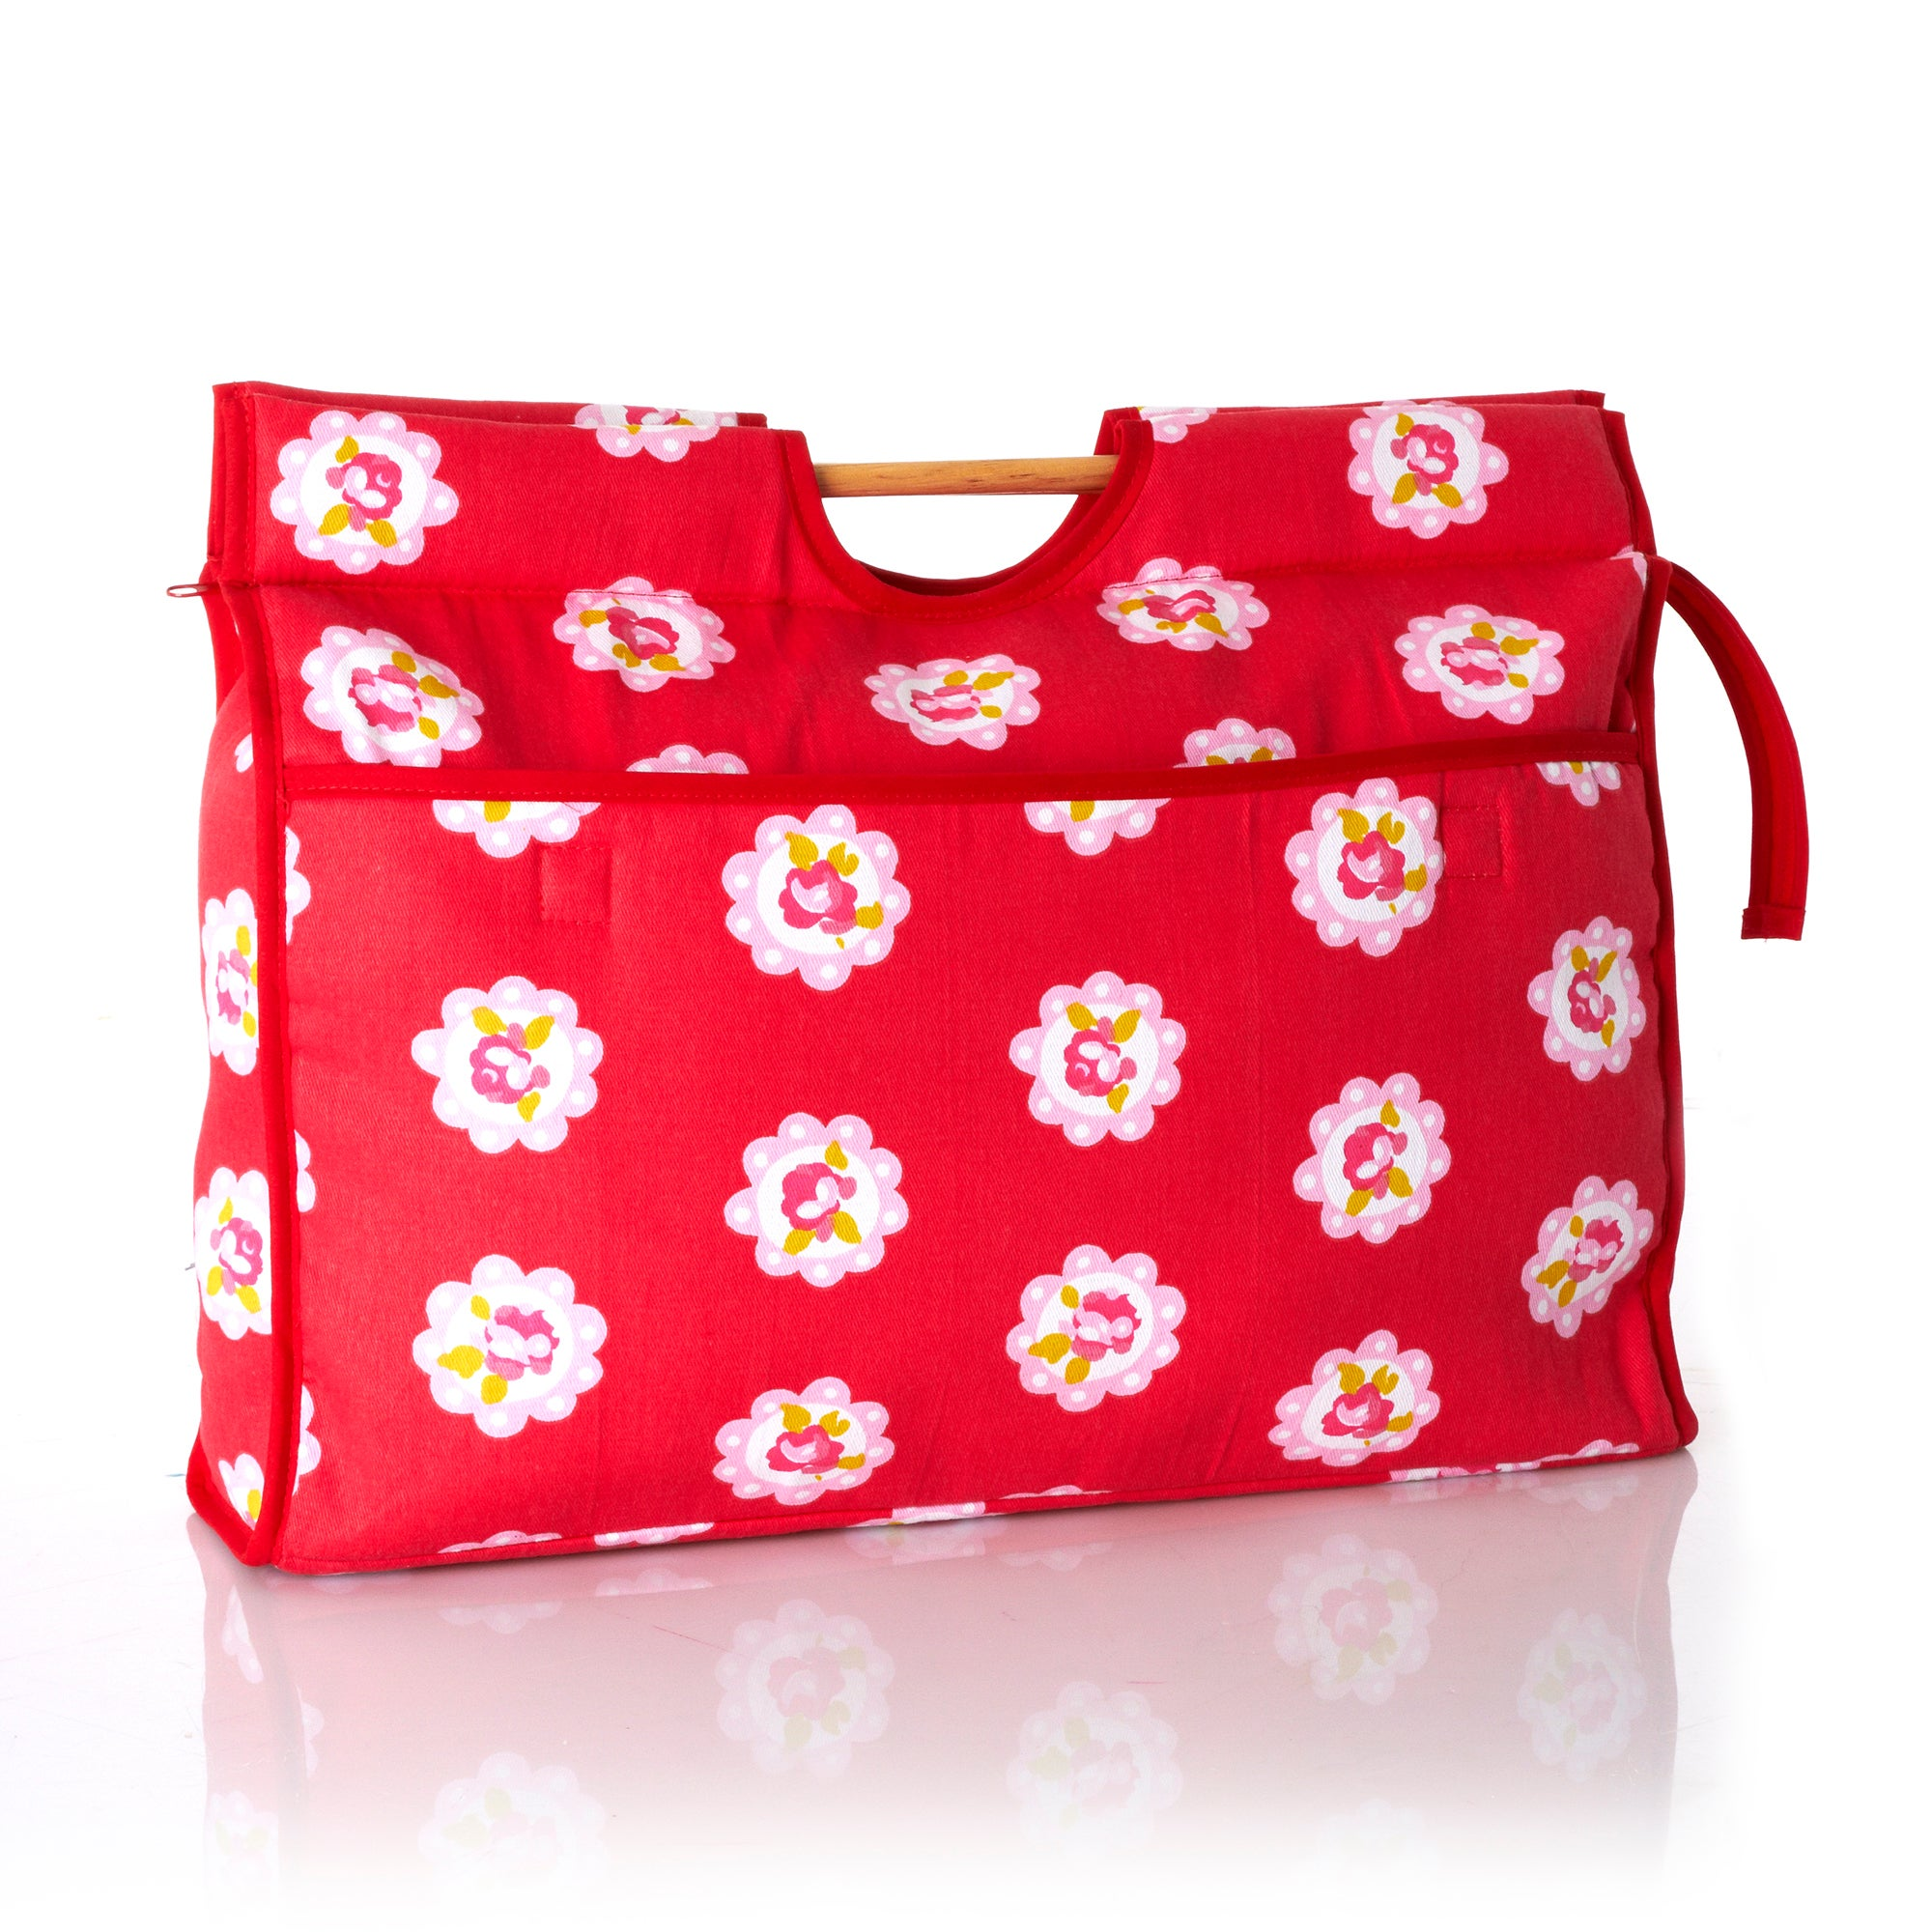 Rose and Ellis Allexton Collection Craft Bag